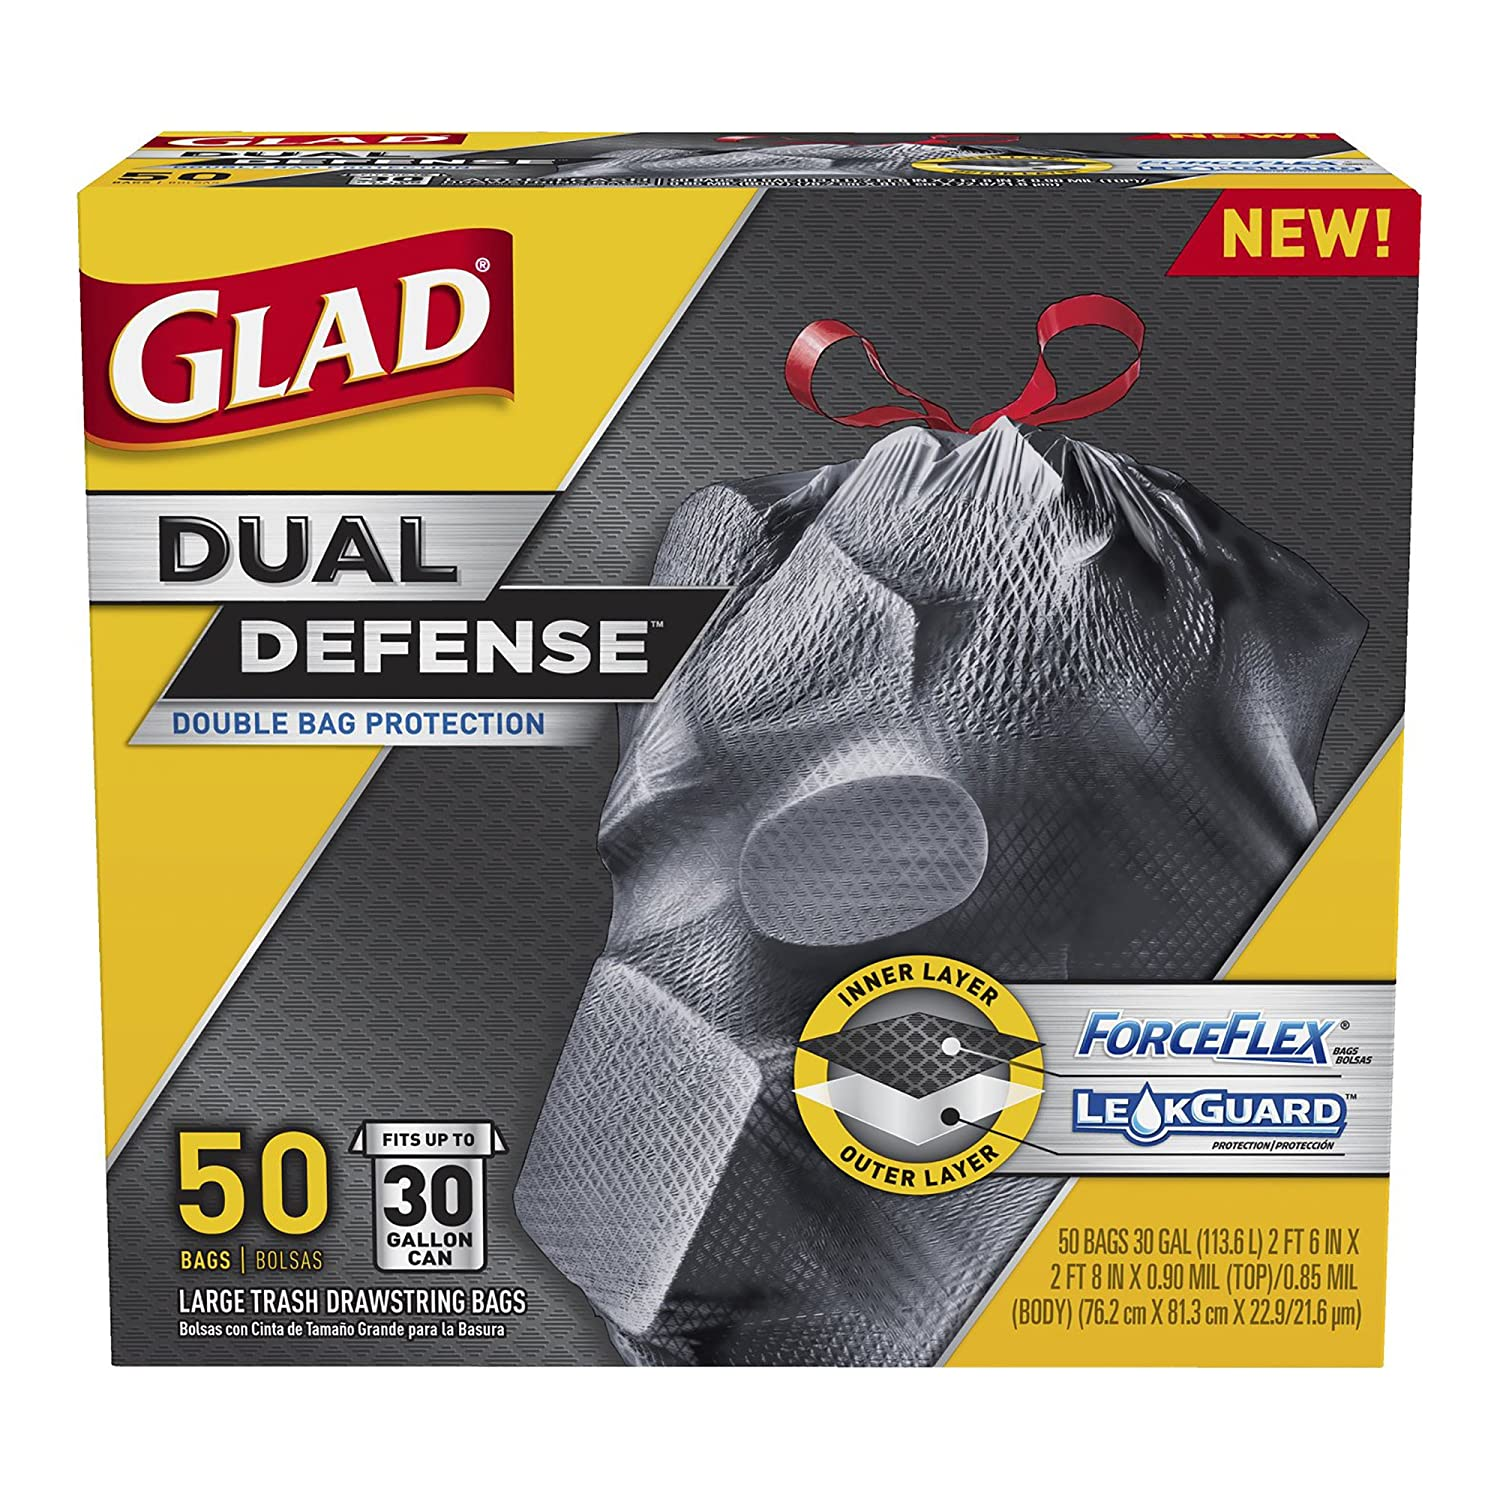 Glad Dual Defense Drawstring Large Trash Bags, 30 Gallon, 50 Count(Product May Vary)